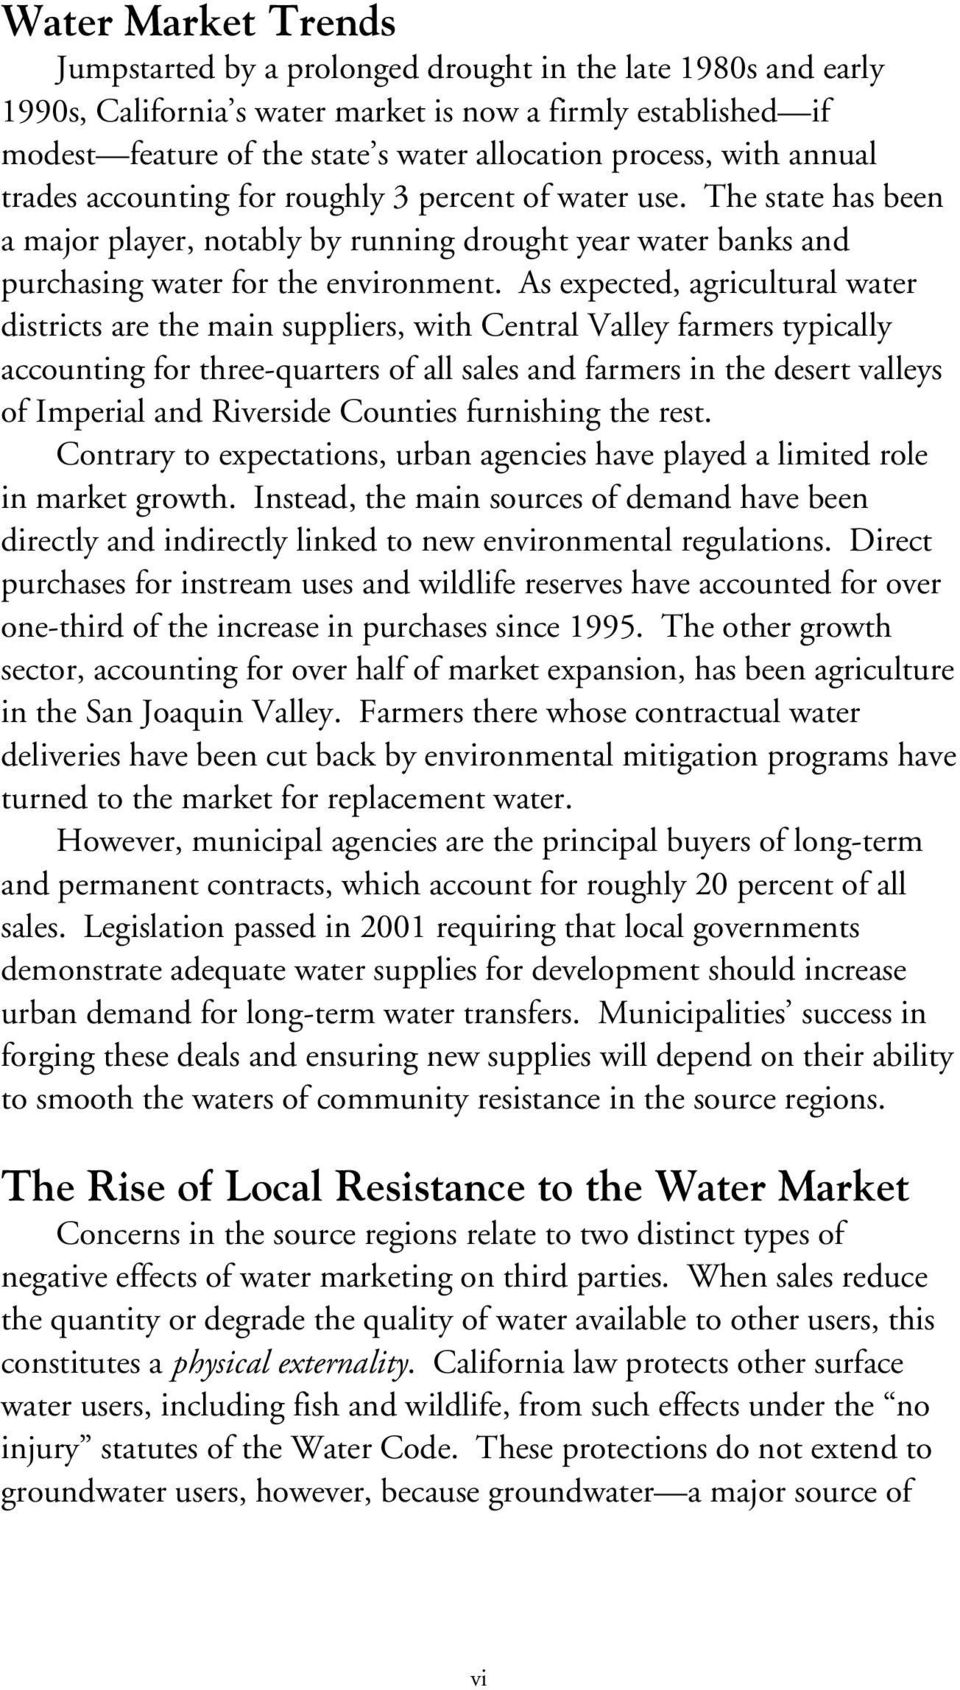 As expected, agricultural water districts are the main suppliers, with Central Valley farmers typically accounting for three-quarters of all sales and farmers in the desert valleys of Imperial and